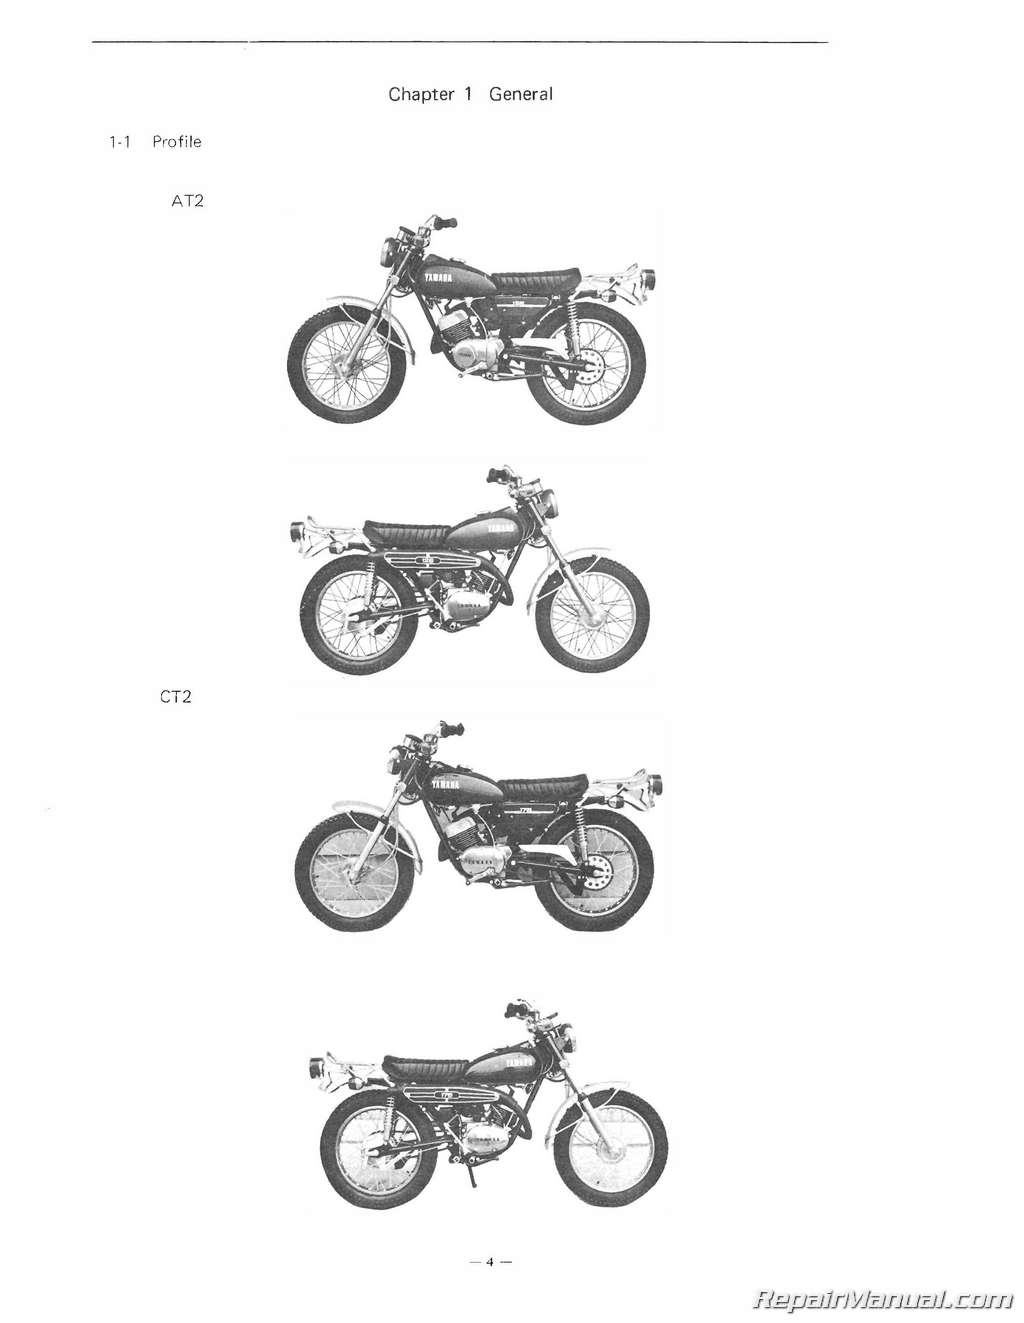 1972 Yamaha 125AT2 175CT2 Motorcycle Service Manual